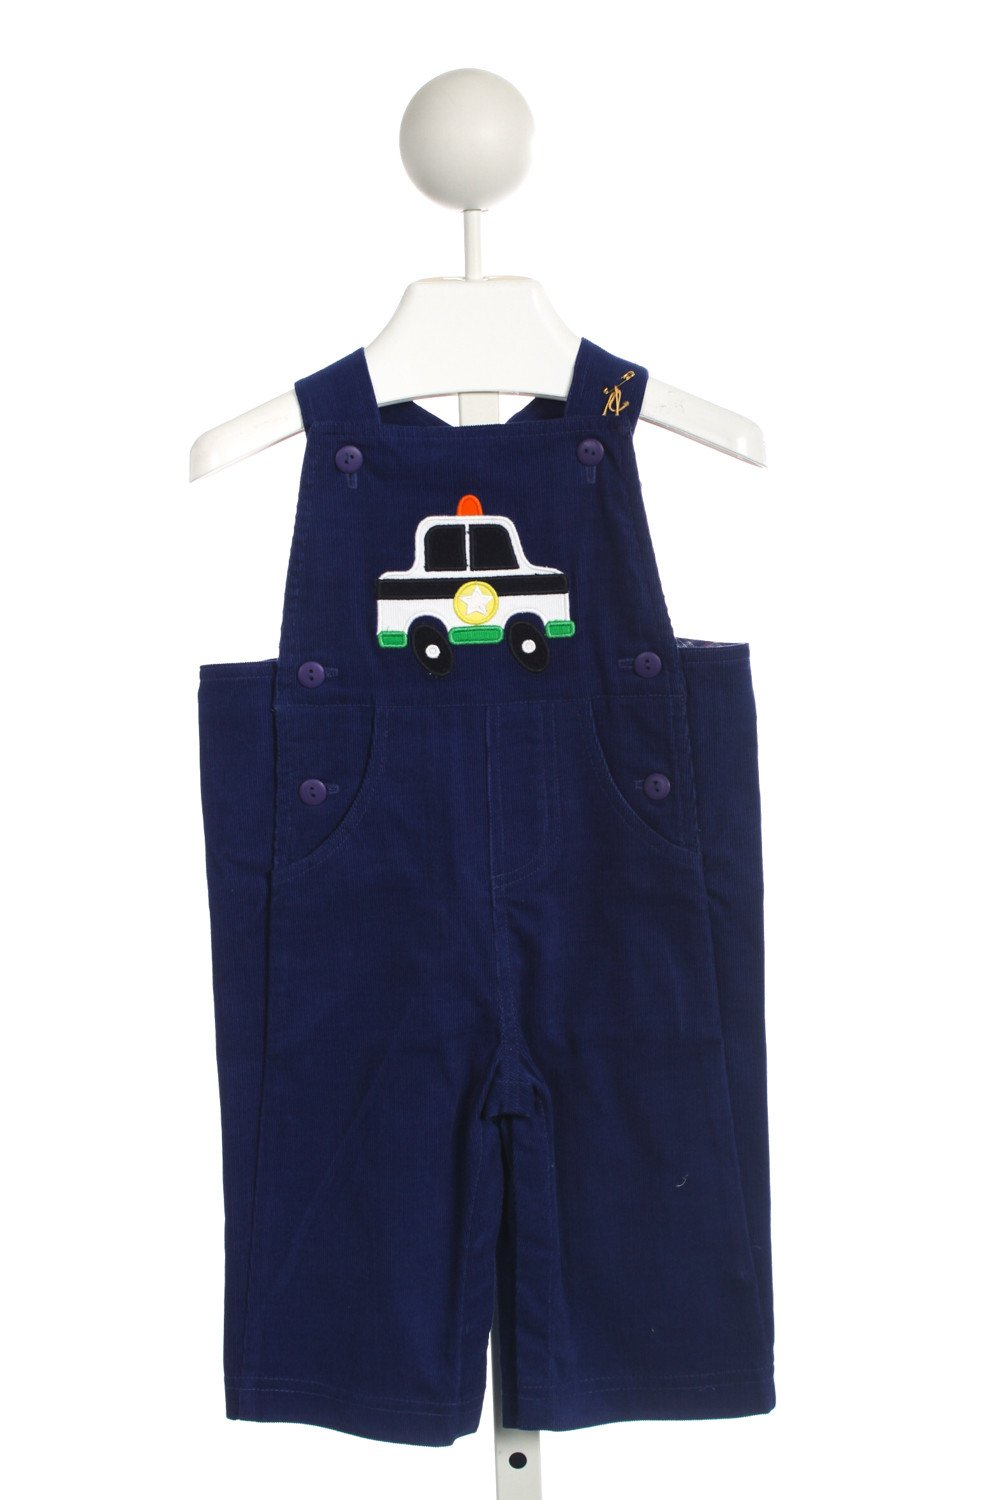 FLORENCE EISEMAN NAVY OVERALL WITH POLICE CAR APPLIQUE